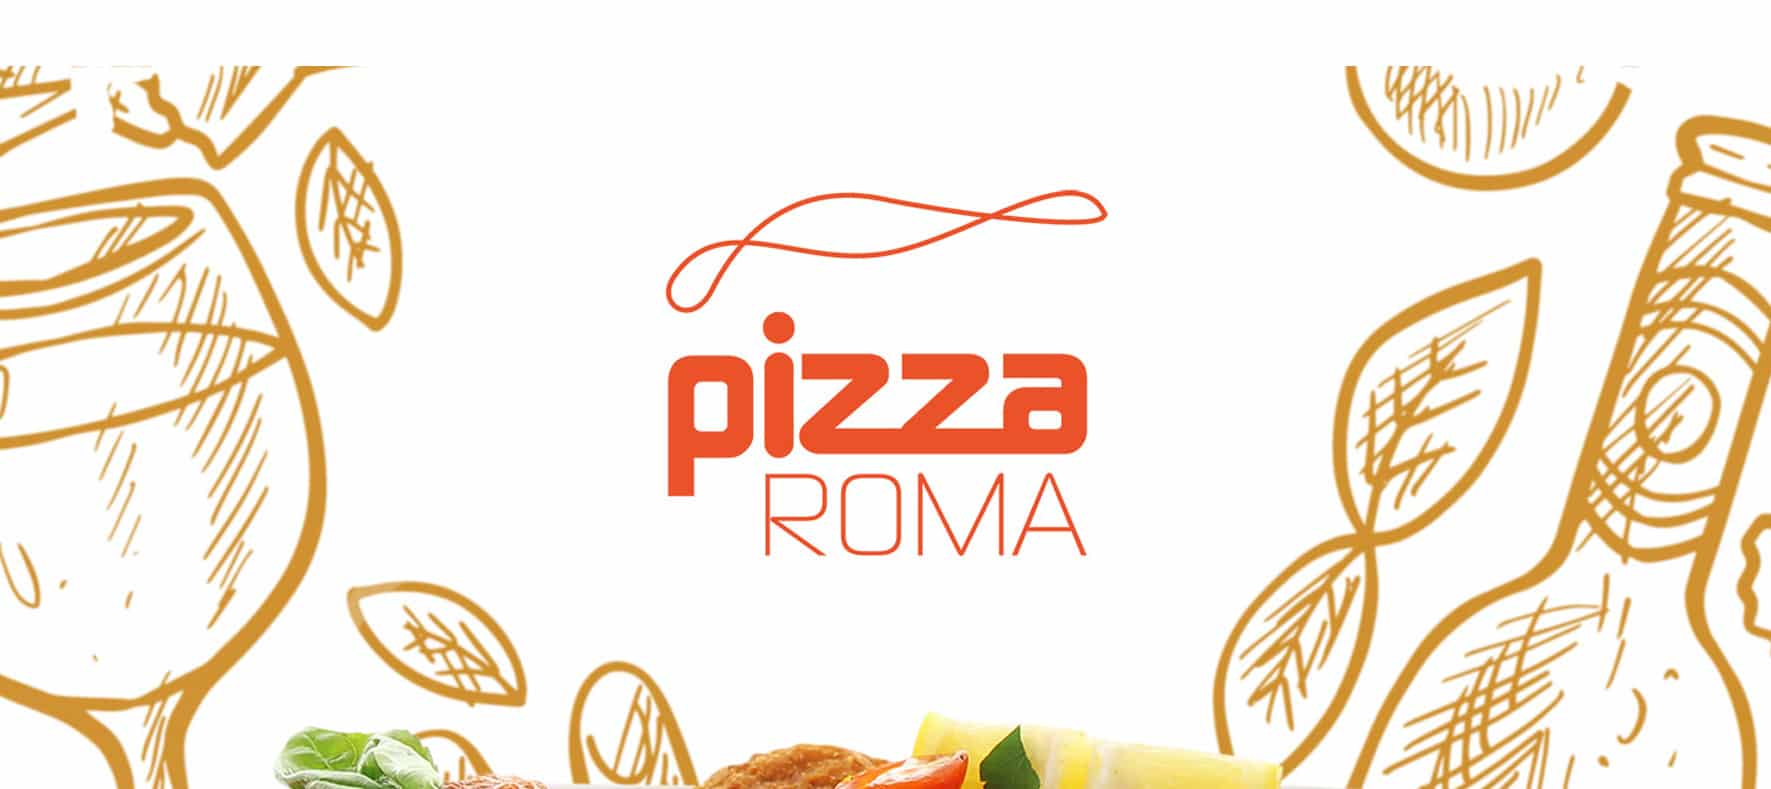 Pizza Roma 2021 Paris 14